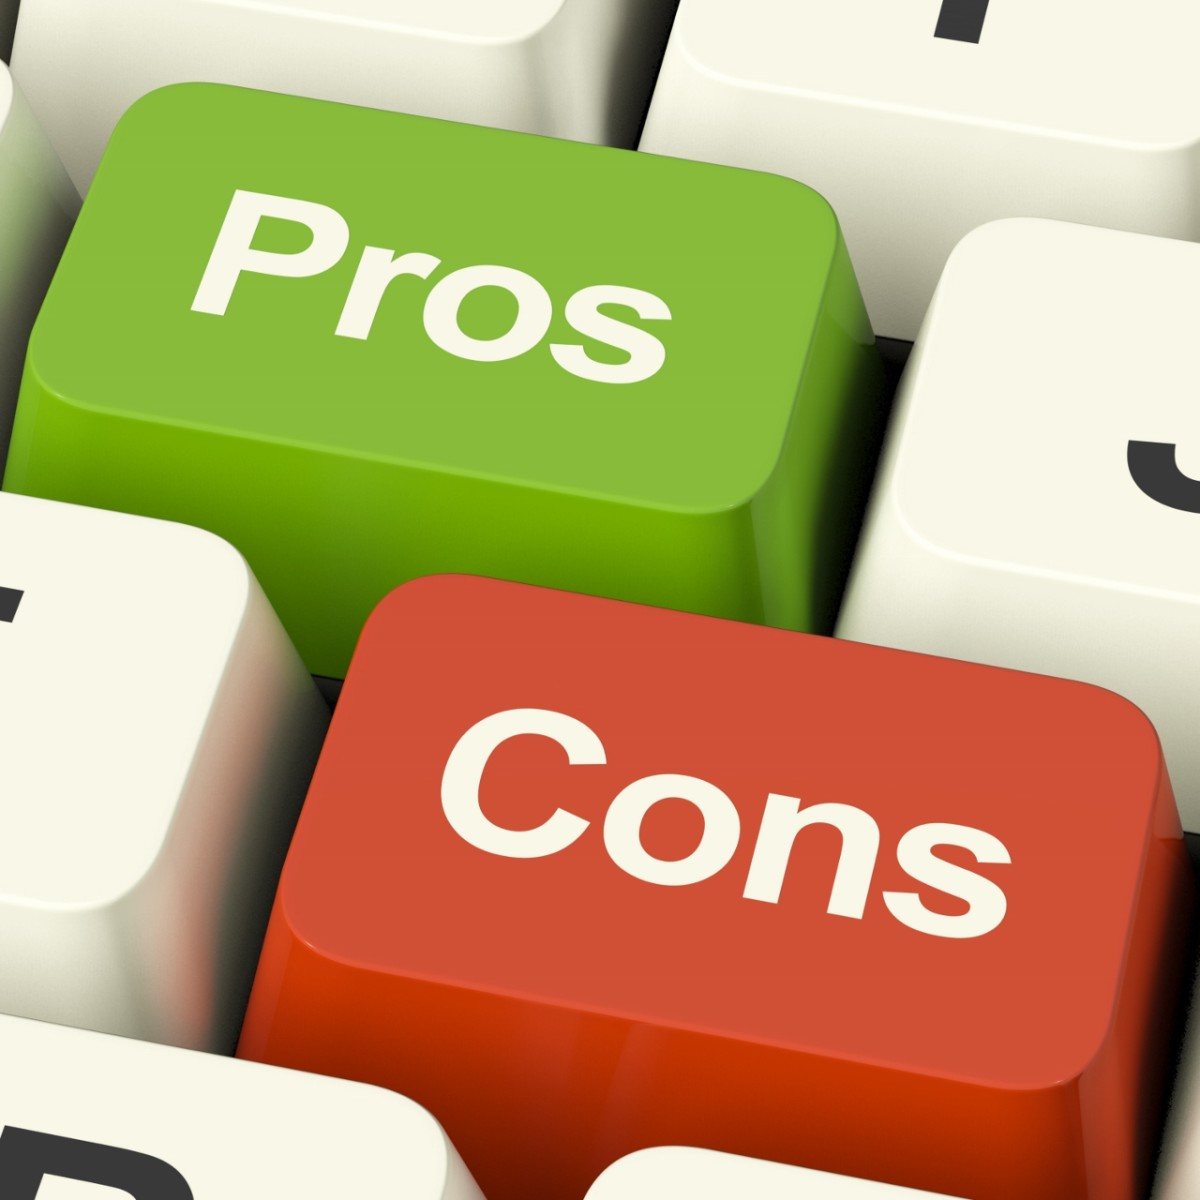 Do the pros outweigh the cons?